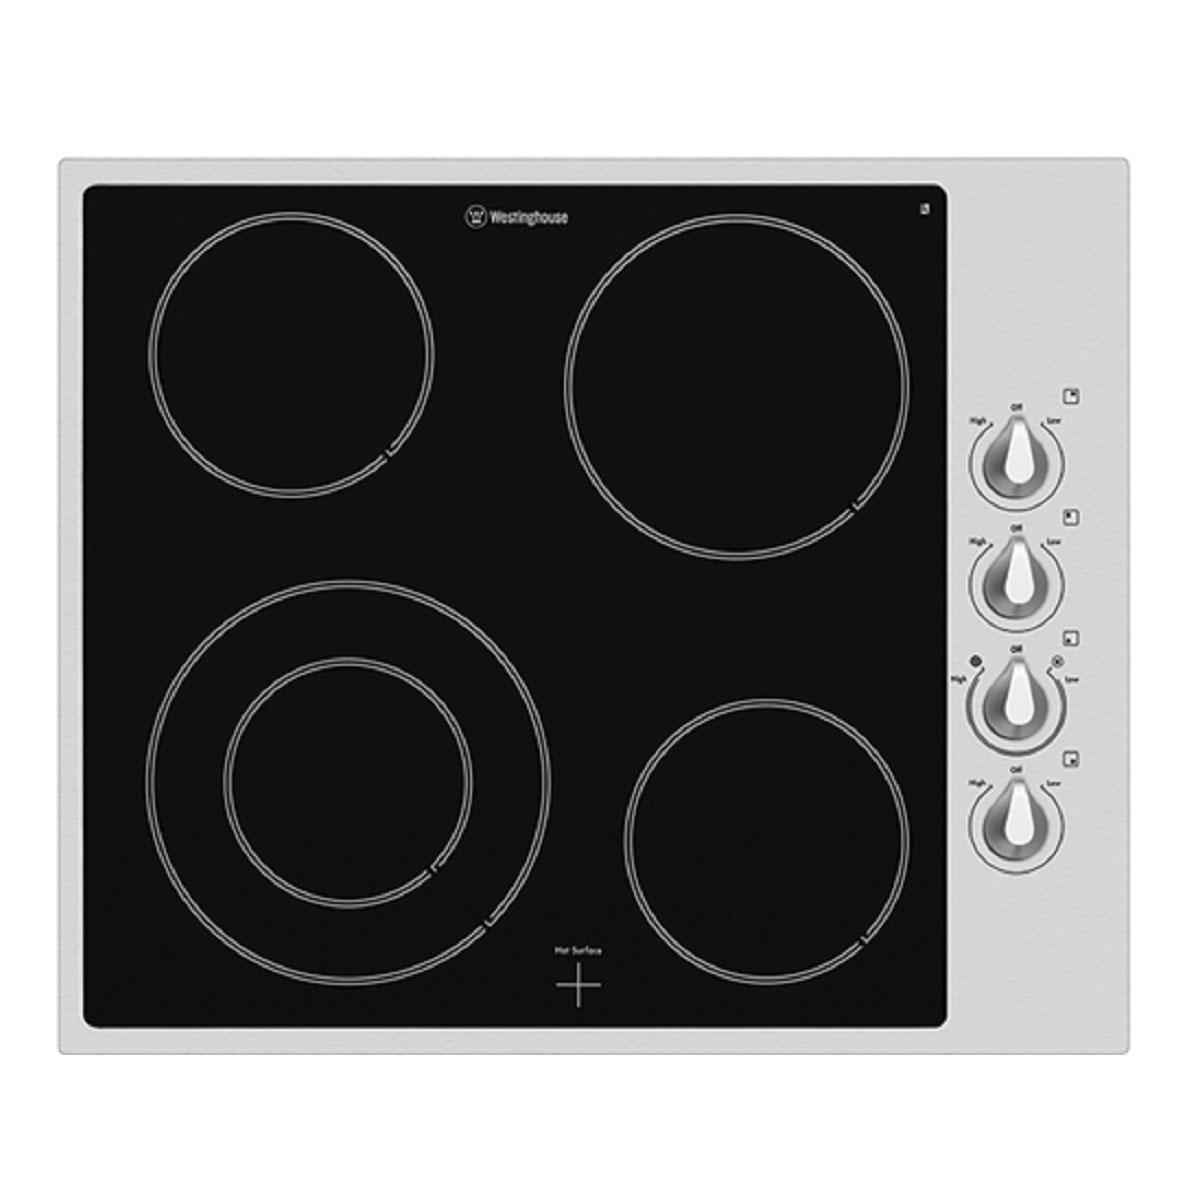 Westinghouse WHC644SA Ceramic Cooktop